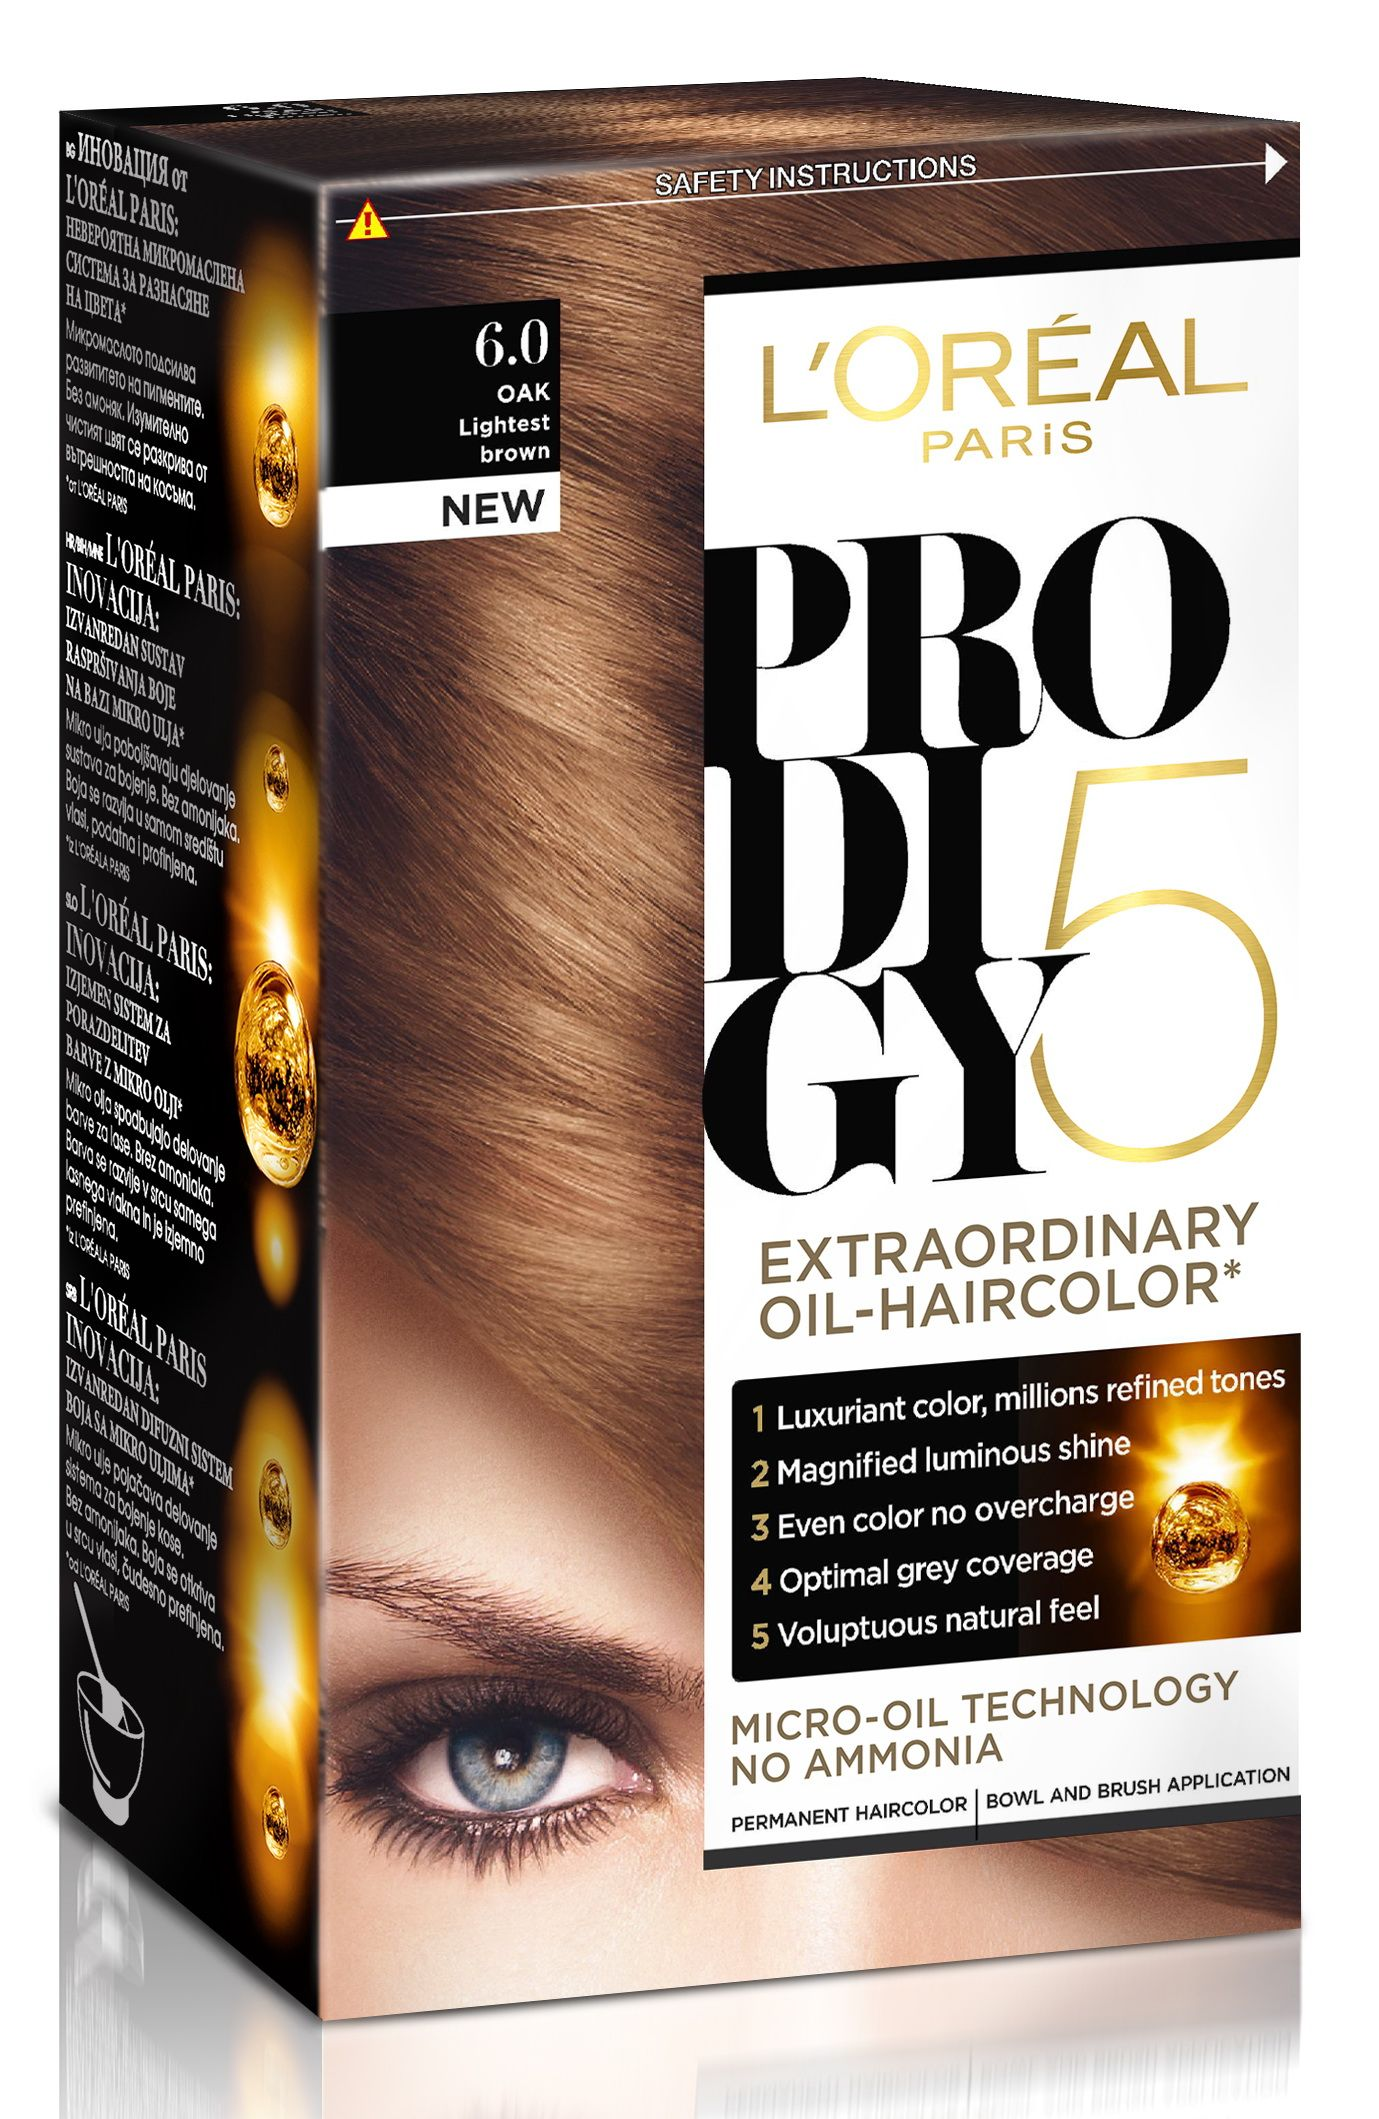 Loreal hair color quiz - L Oreal Prodigy 6 0 Oak Looks So Natural On